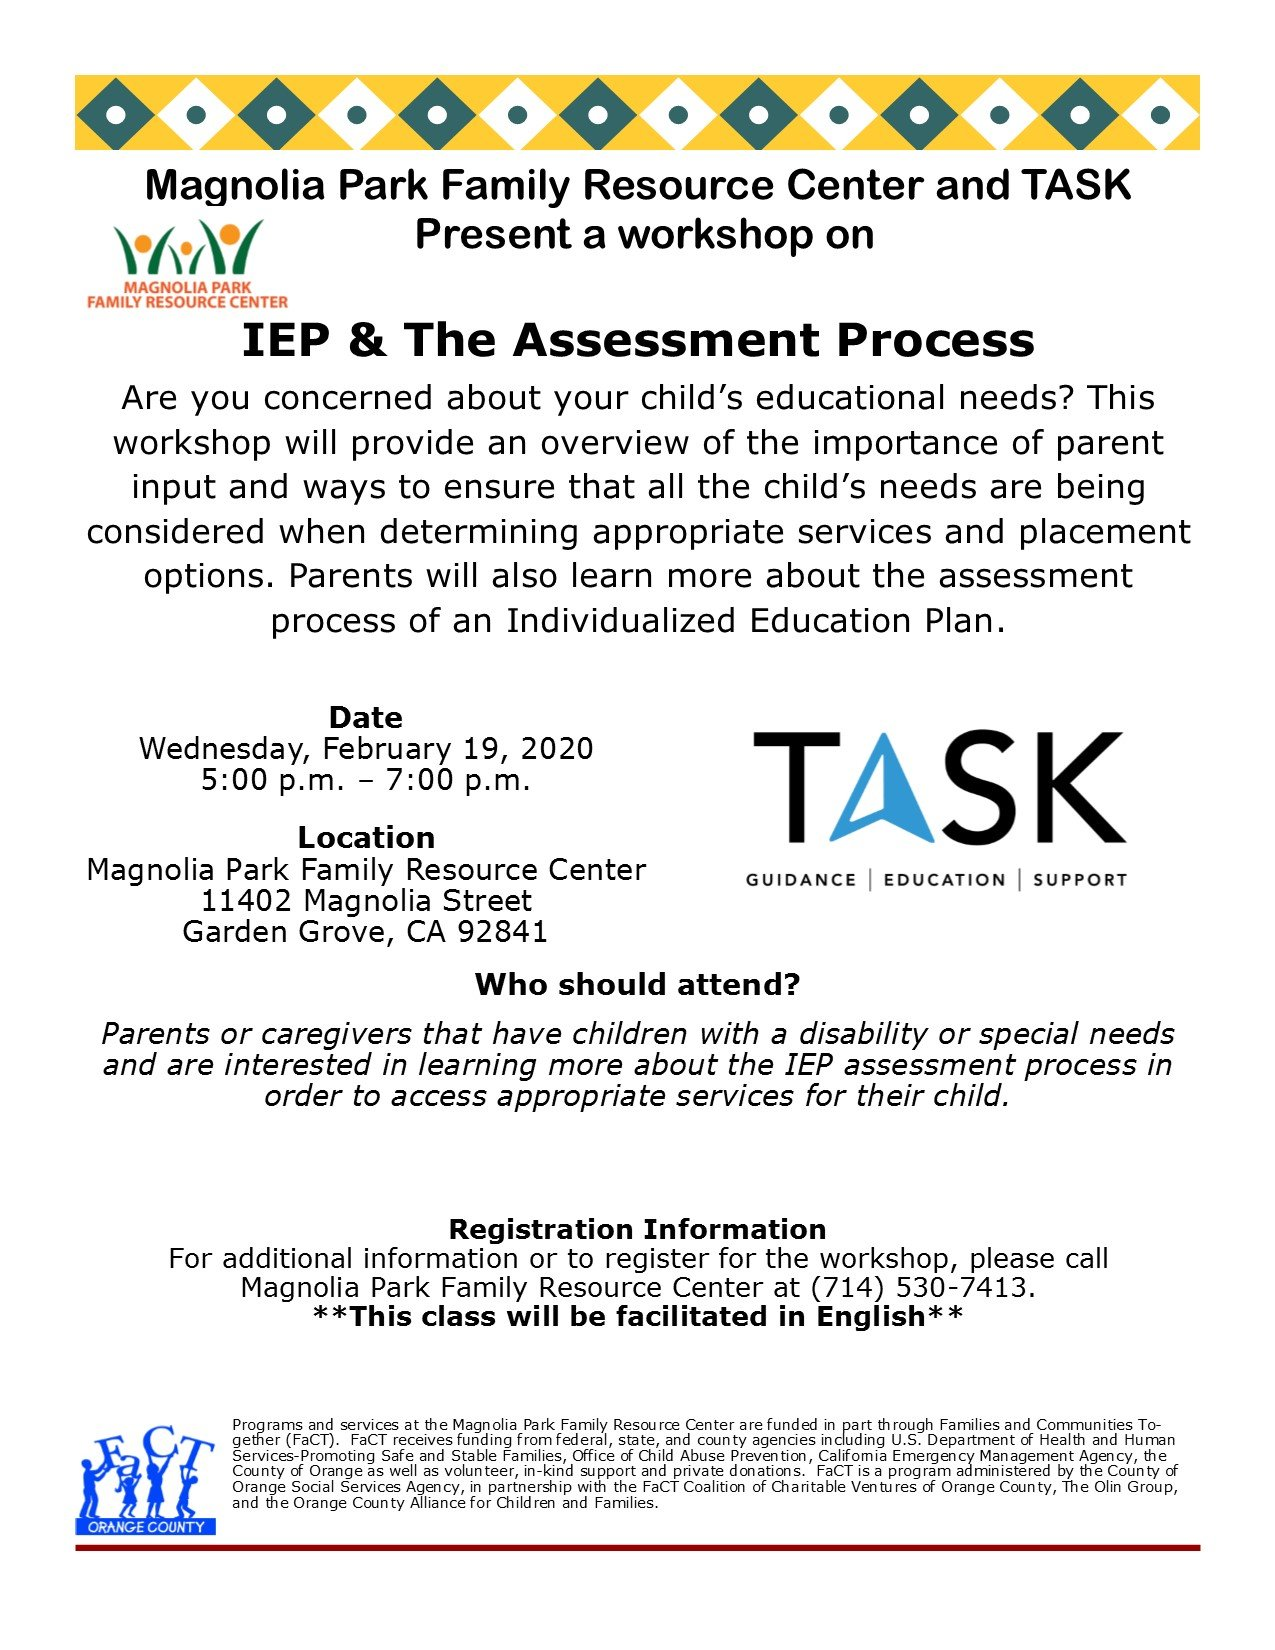 IEP & The Assessment Process (English)